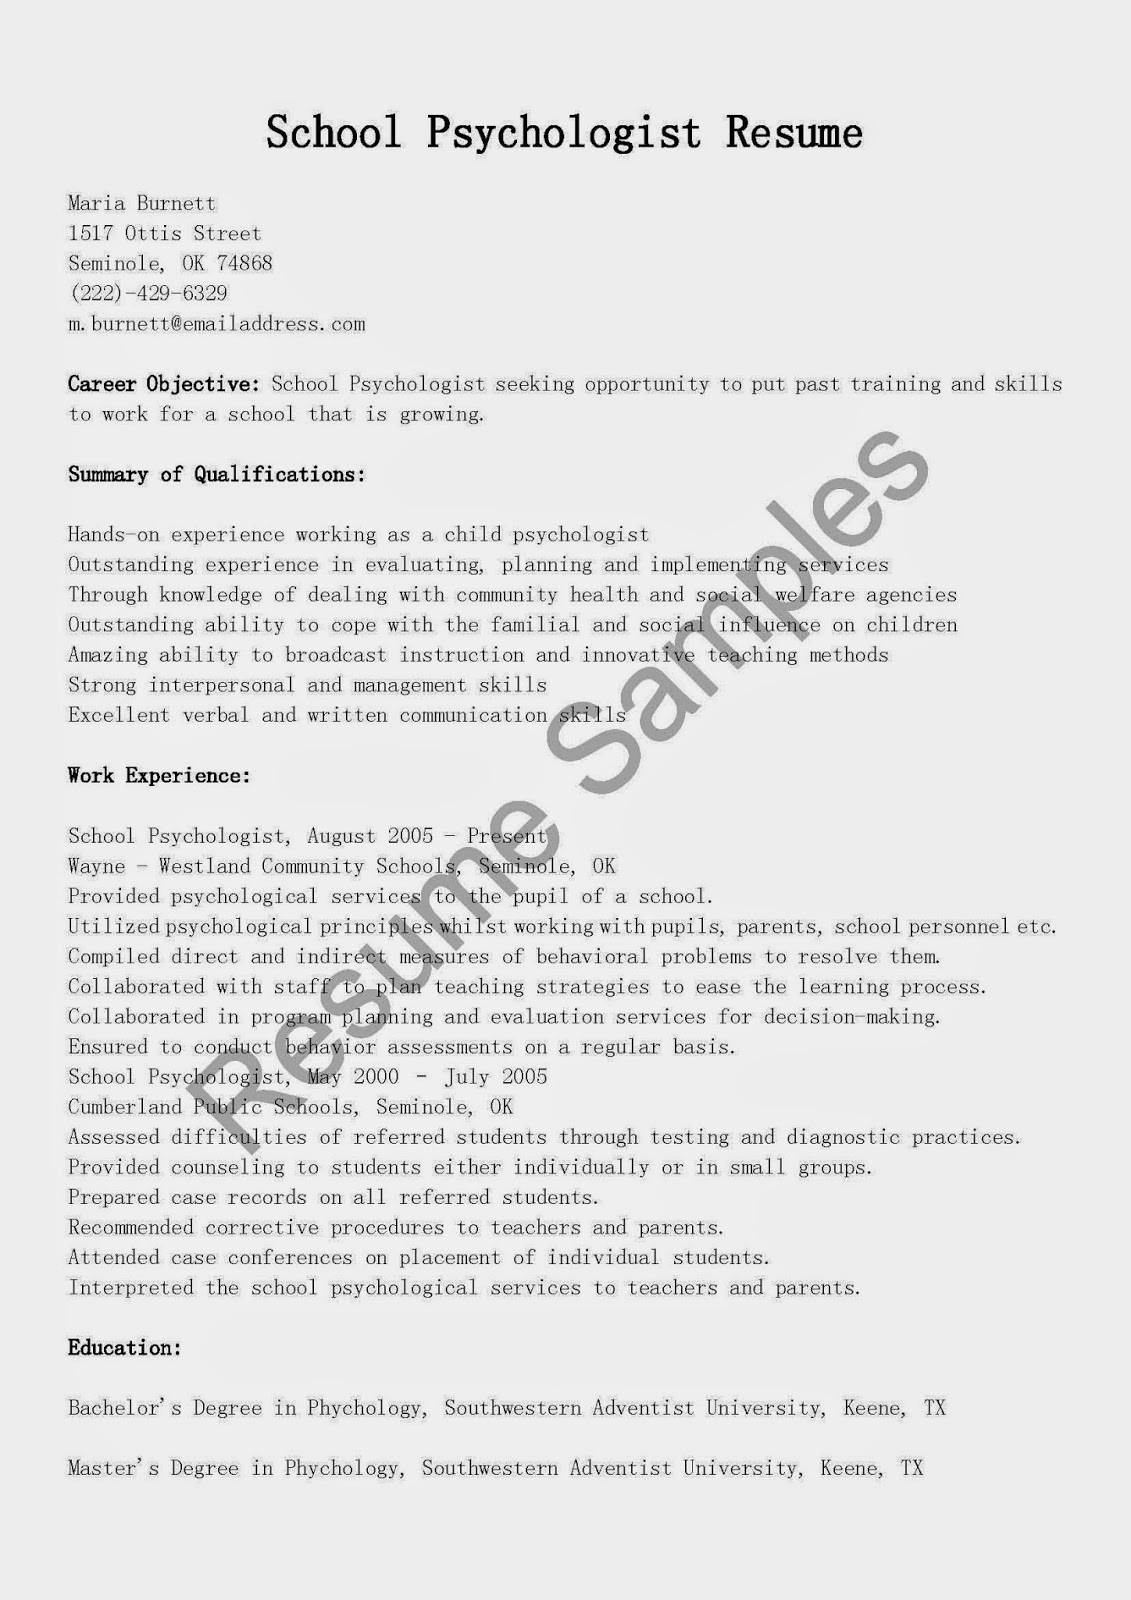 Sample resume for educational psychologist